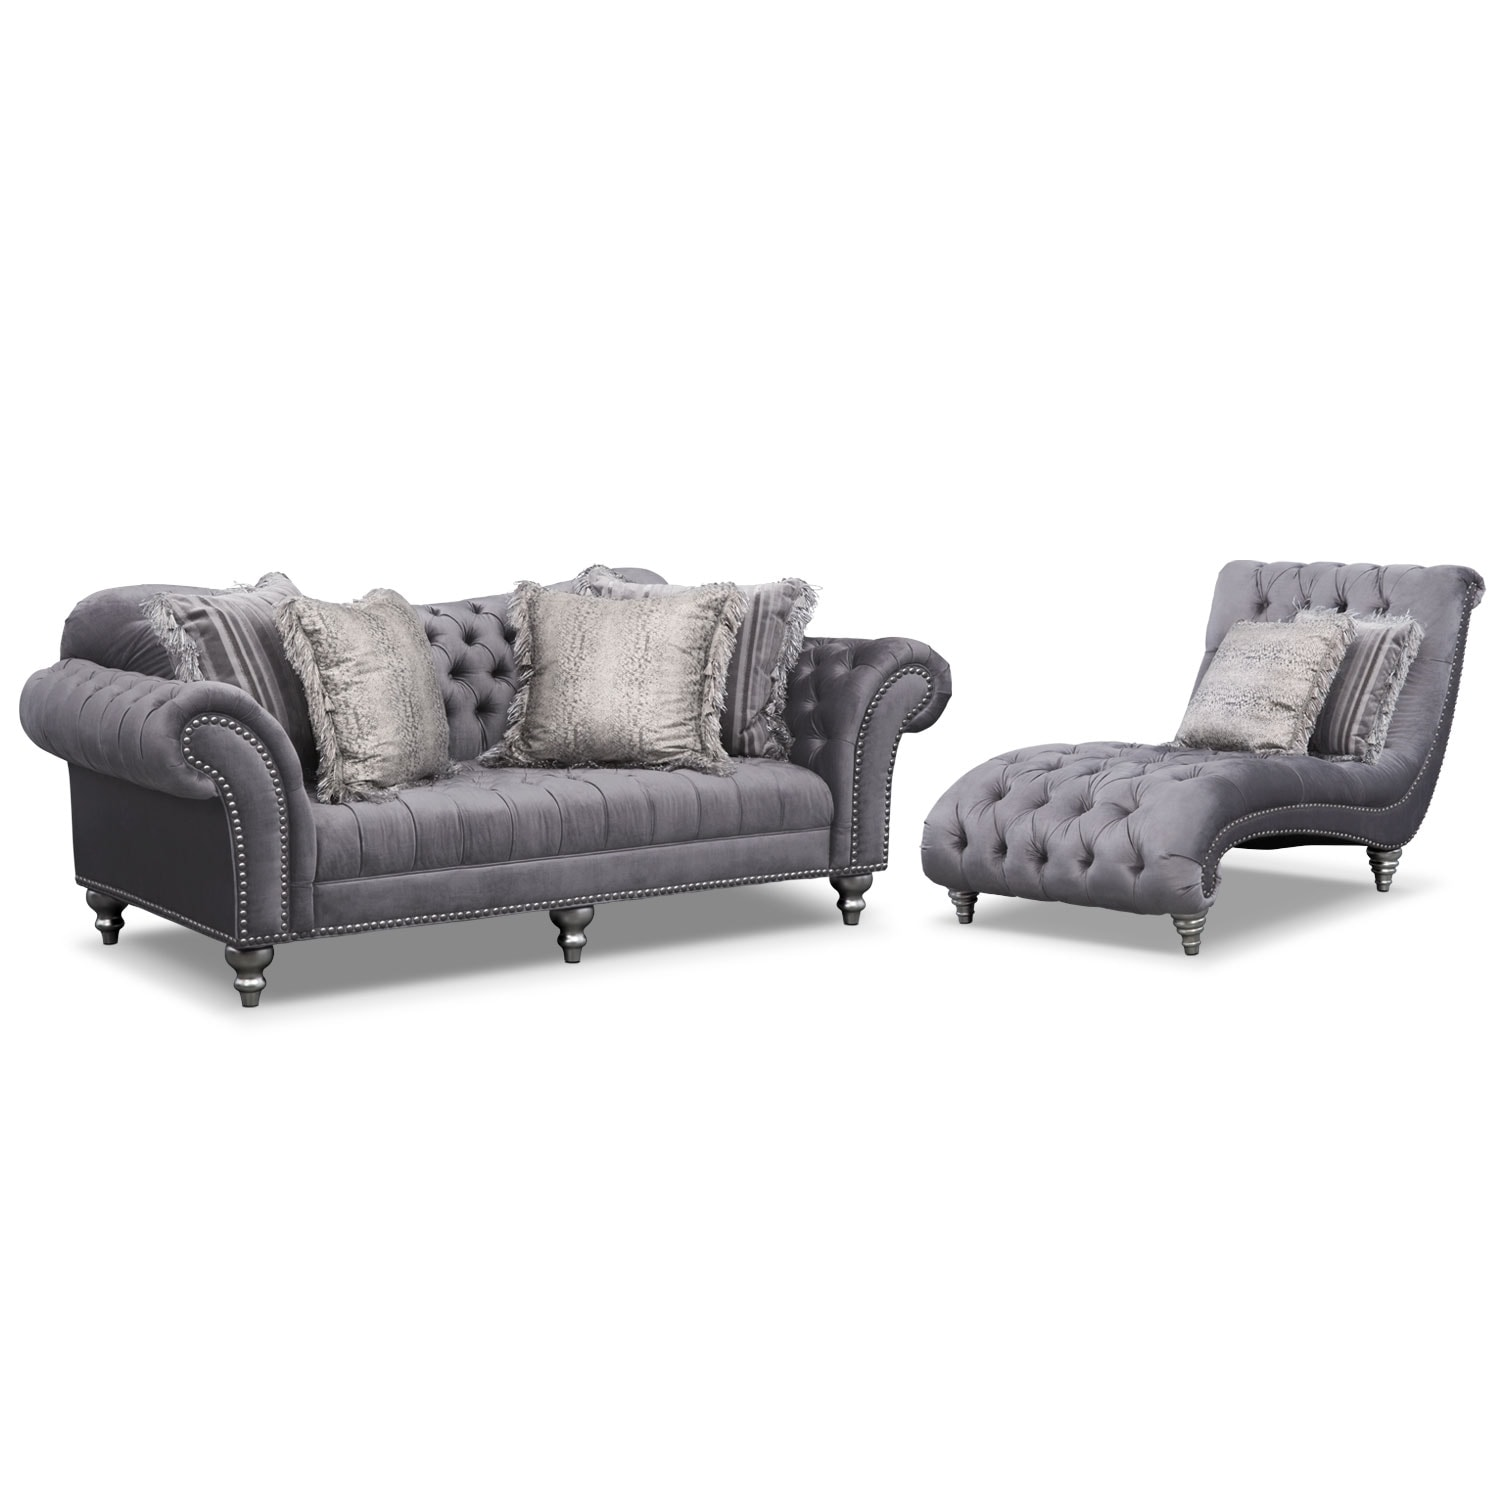 Living Room Furniture - Brittney Sofa and Chaise Set- Gray